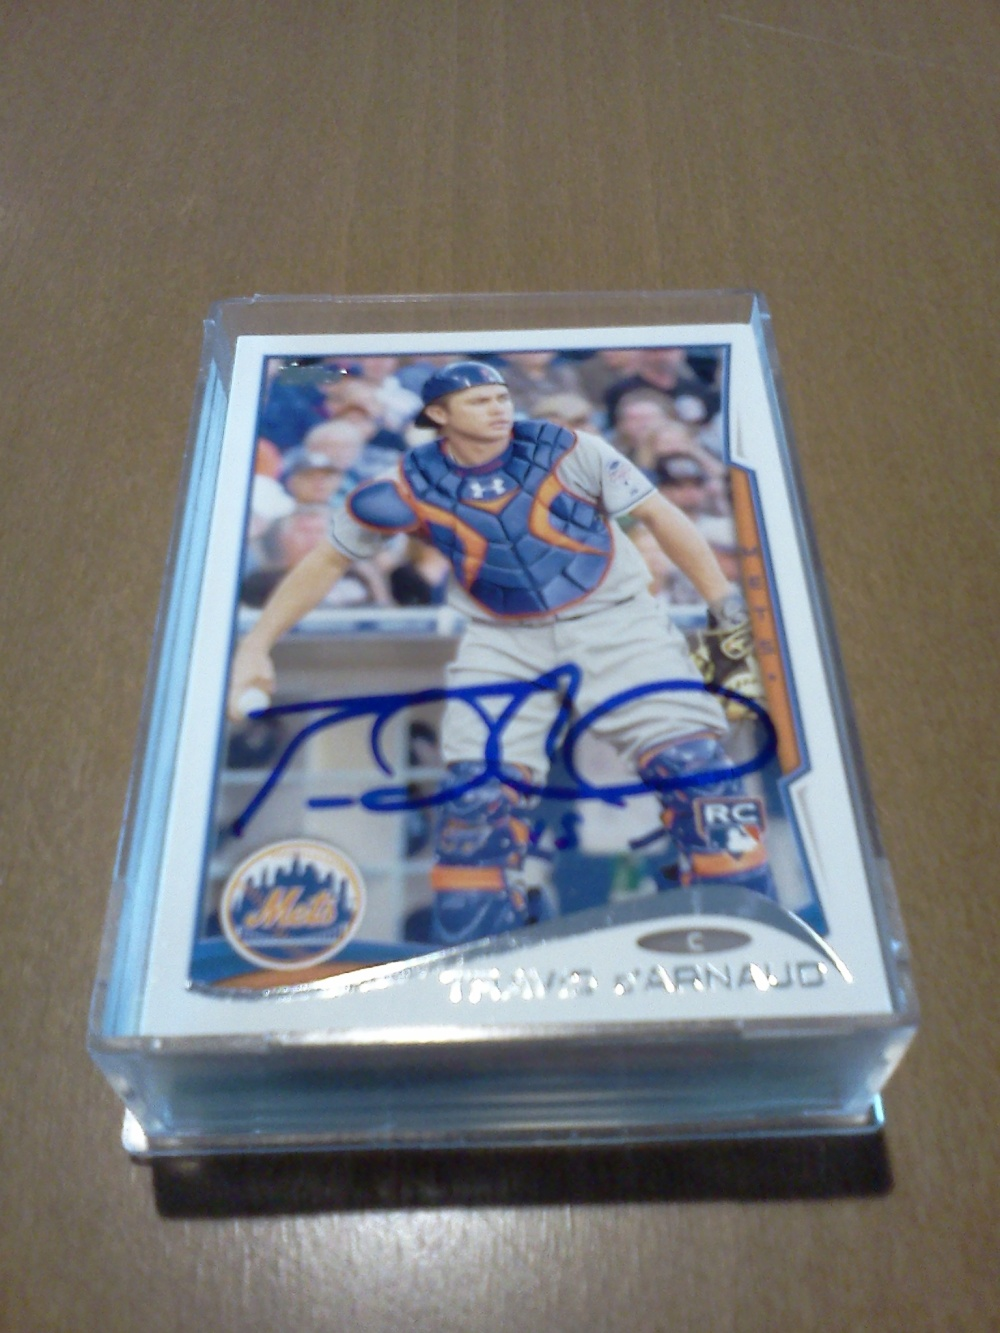 My autographed Travis d'Arnaud 2014 Topps baseball card